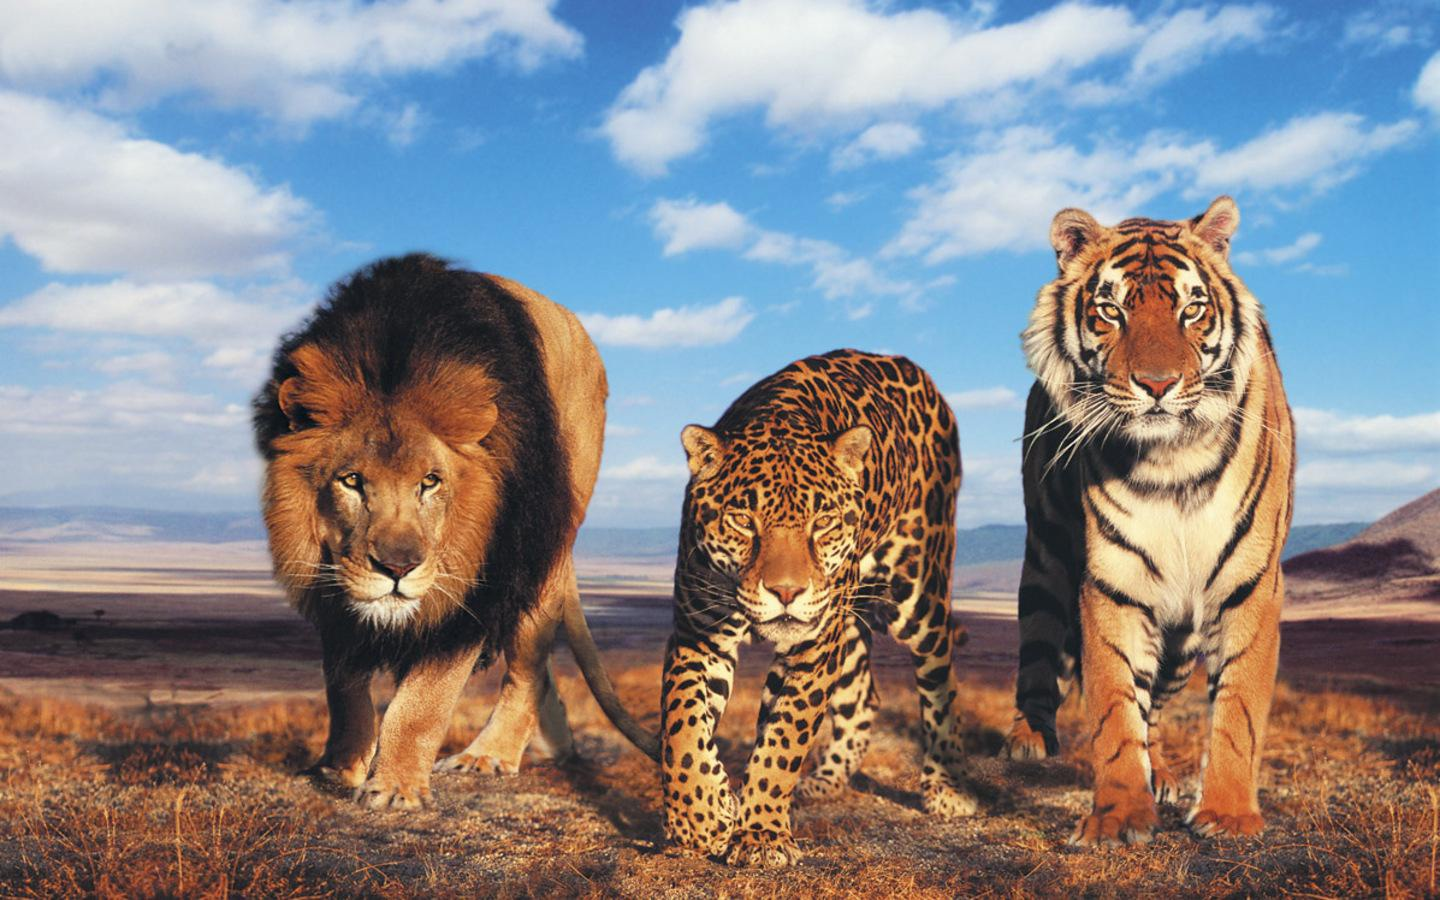 image - lion-cheetah-and-tiger-animals-big-cat-wallpaper